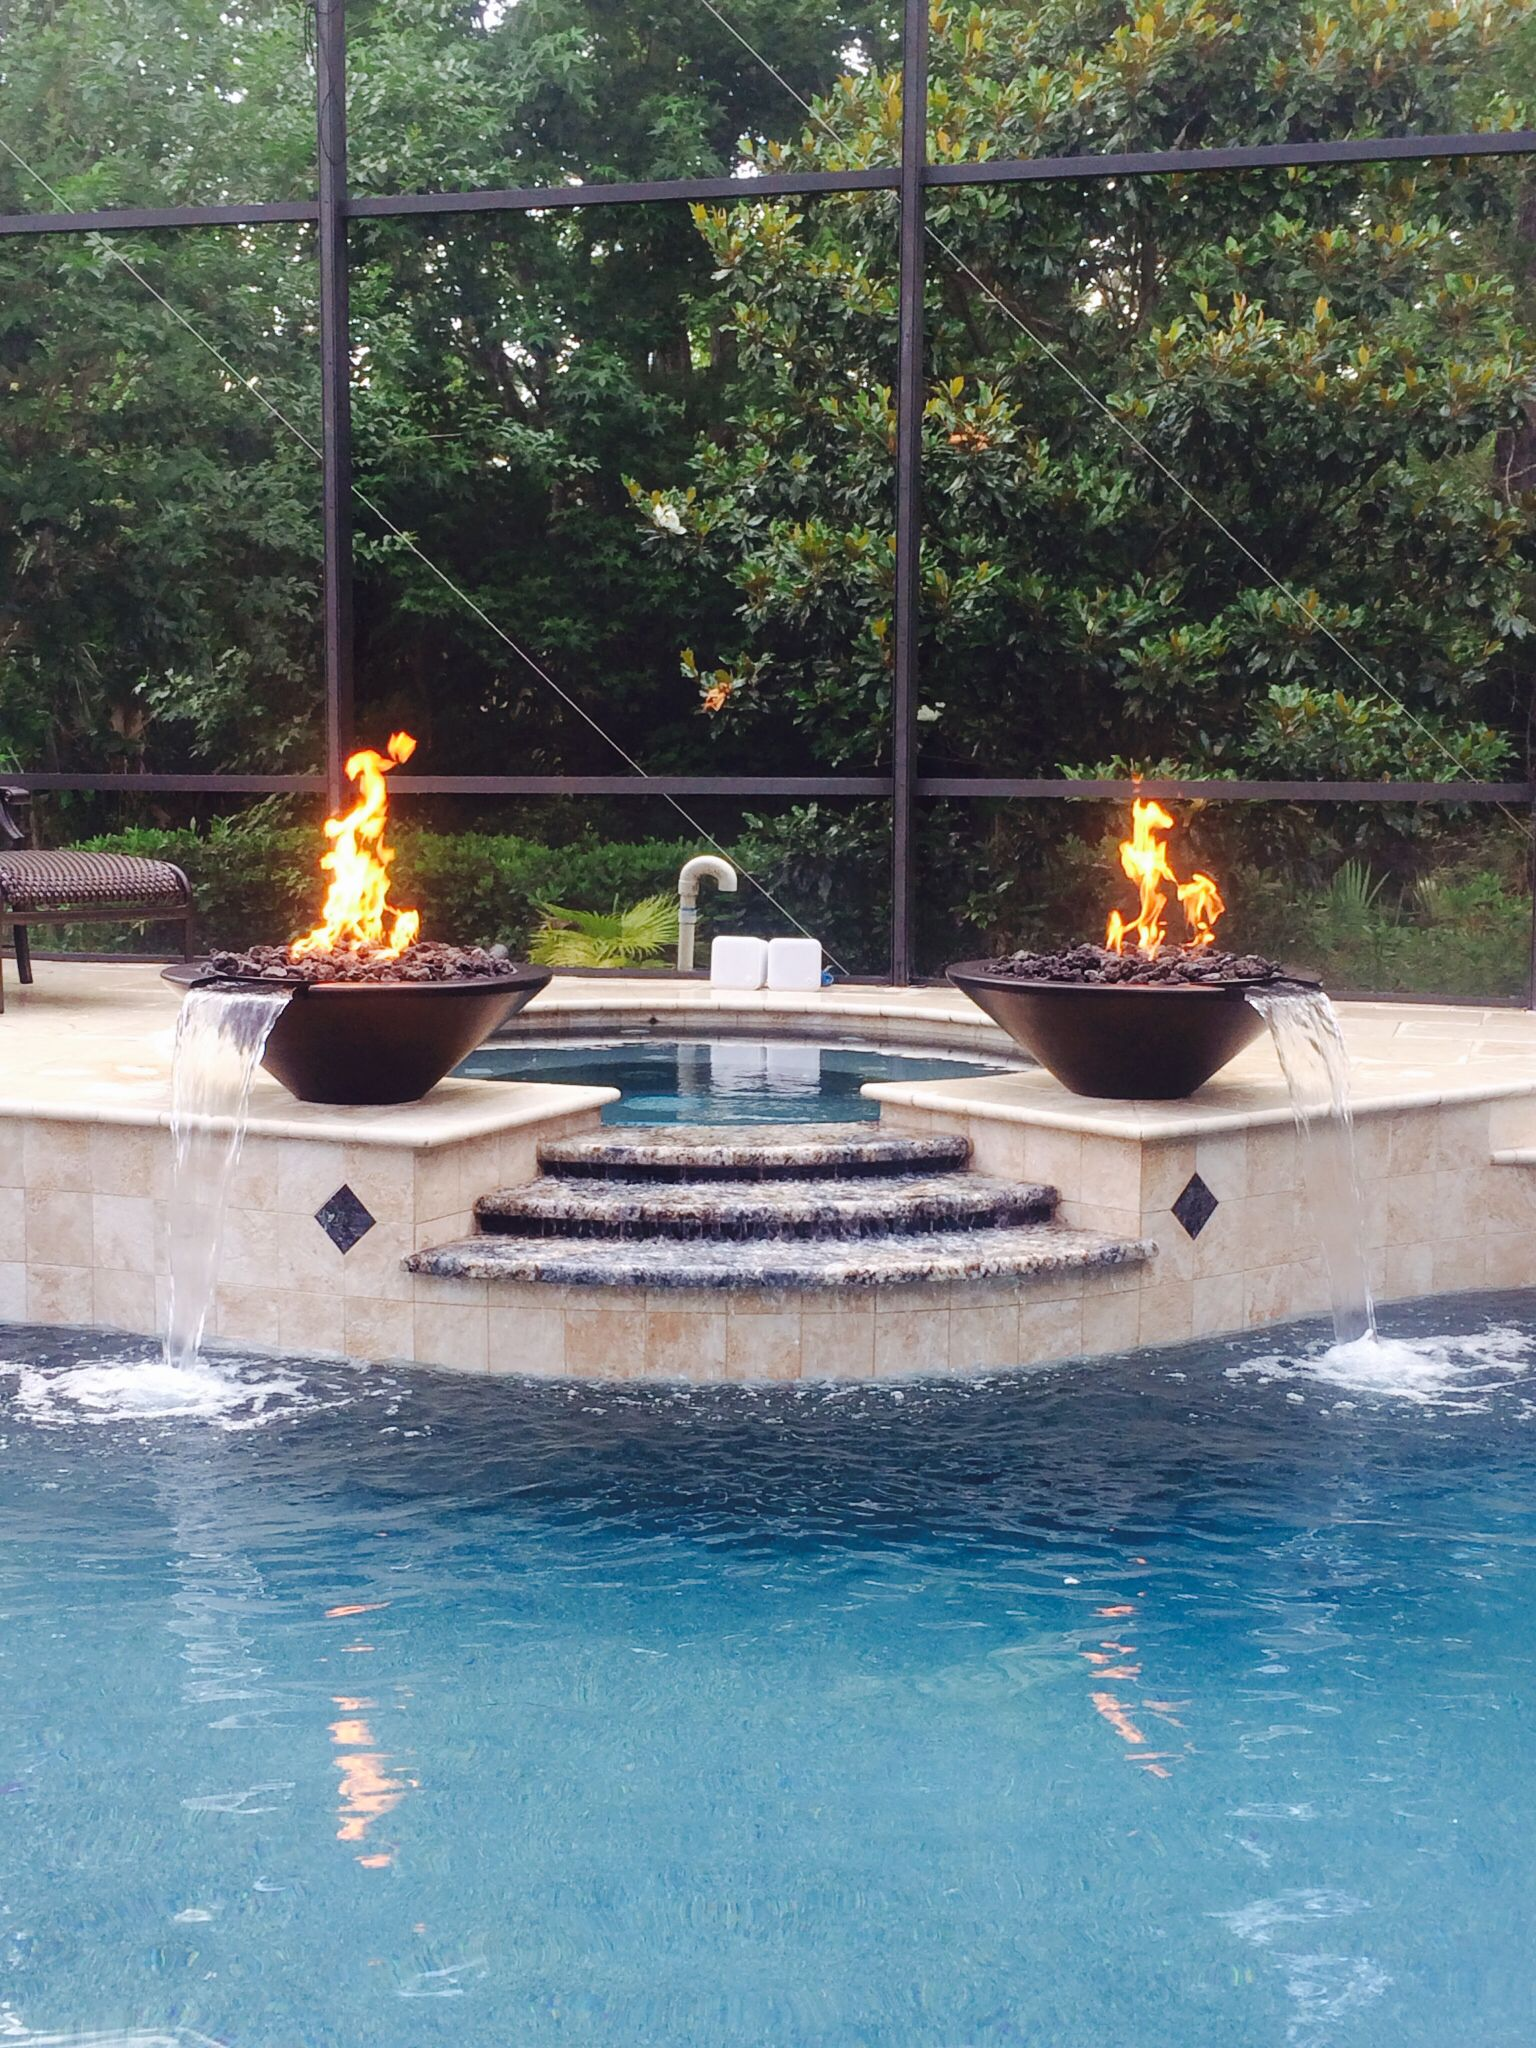 Dual Grand Effects Essex Fire And Water Bowls Outdoor Living Outdoor Decor Outdoor